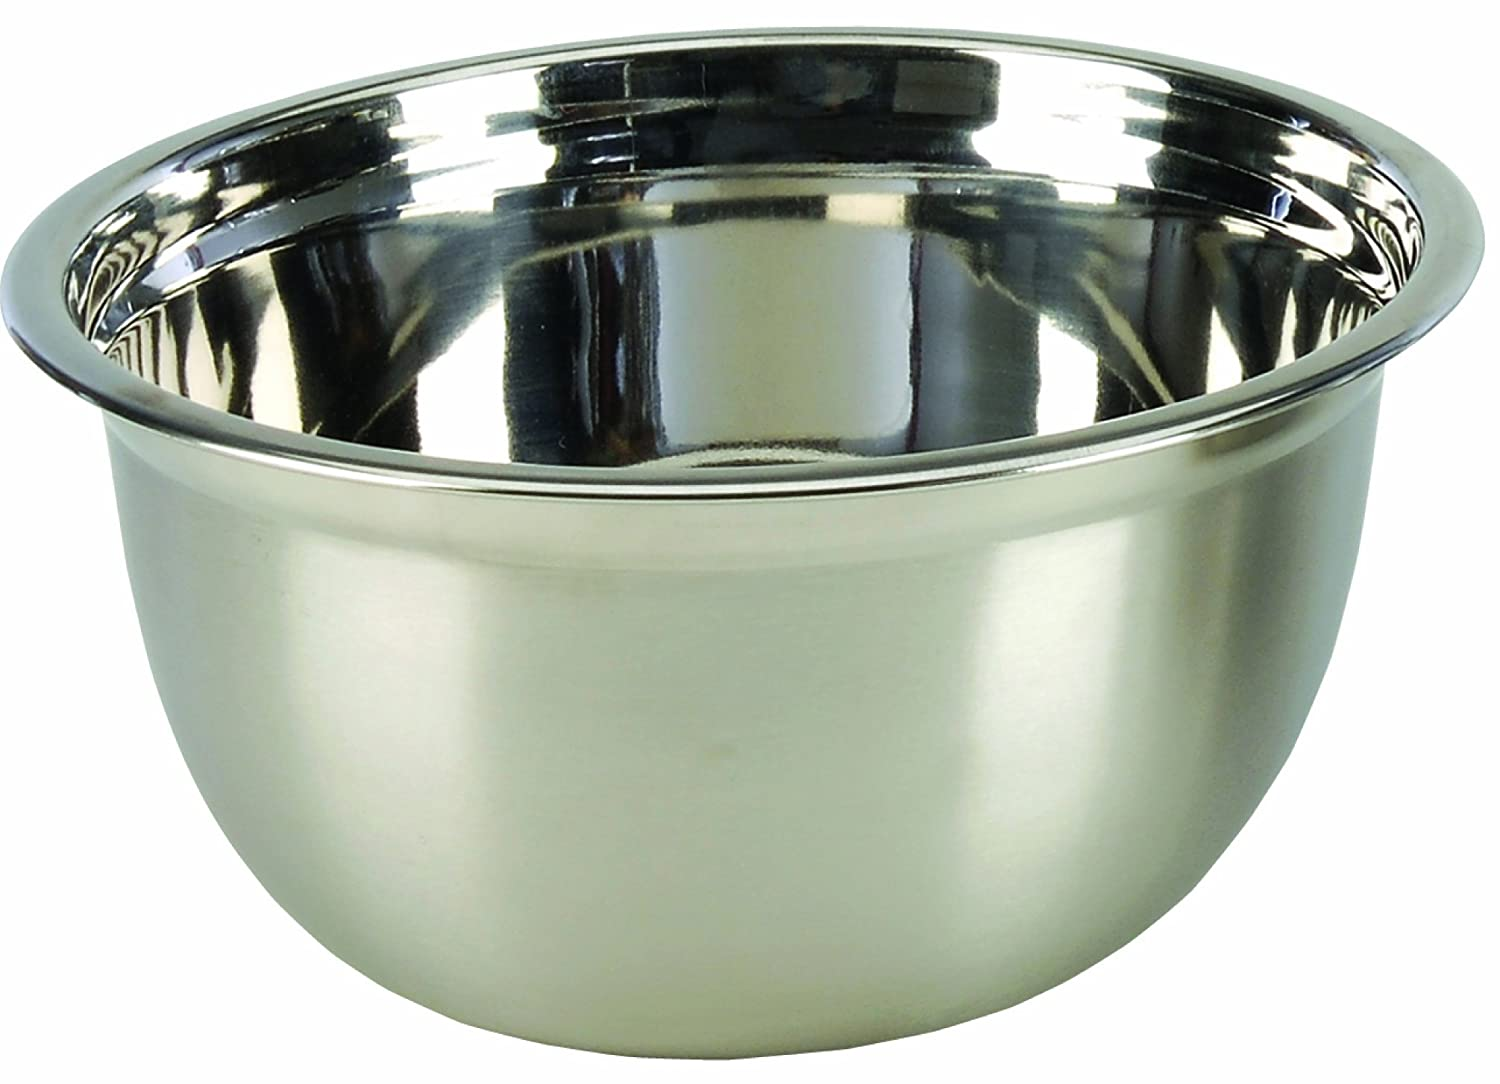 Cook Pro 5-Quart Stainless Steel Mixing Bowl ExcelSteel 322